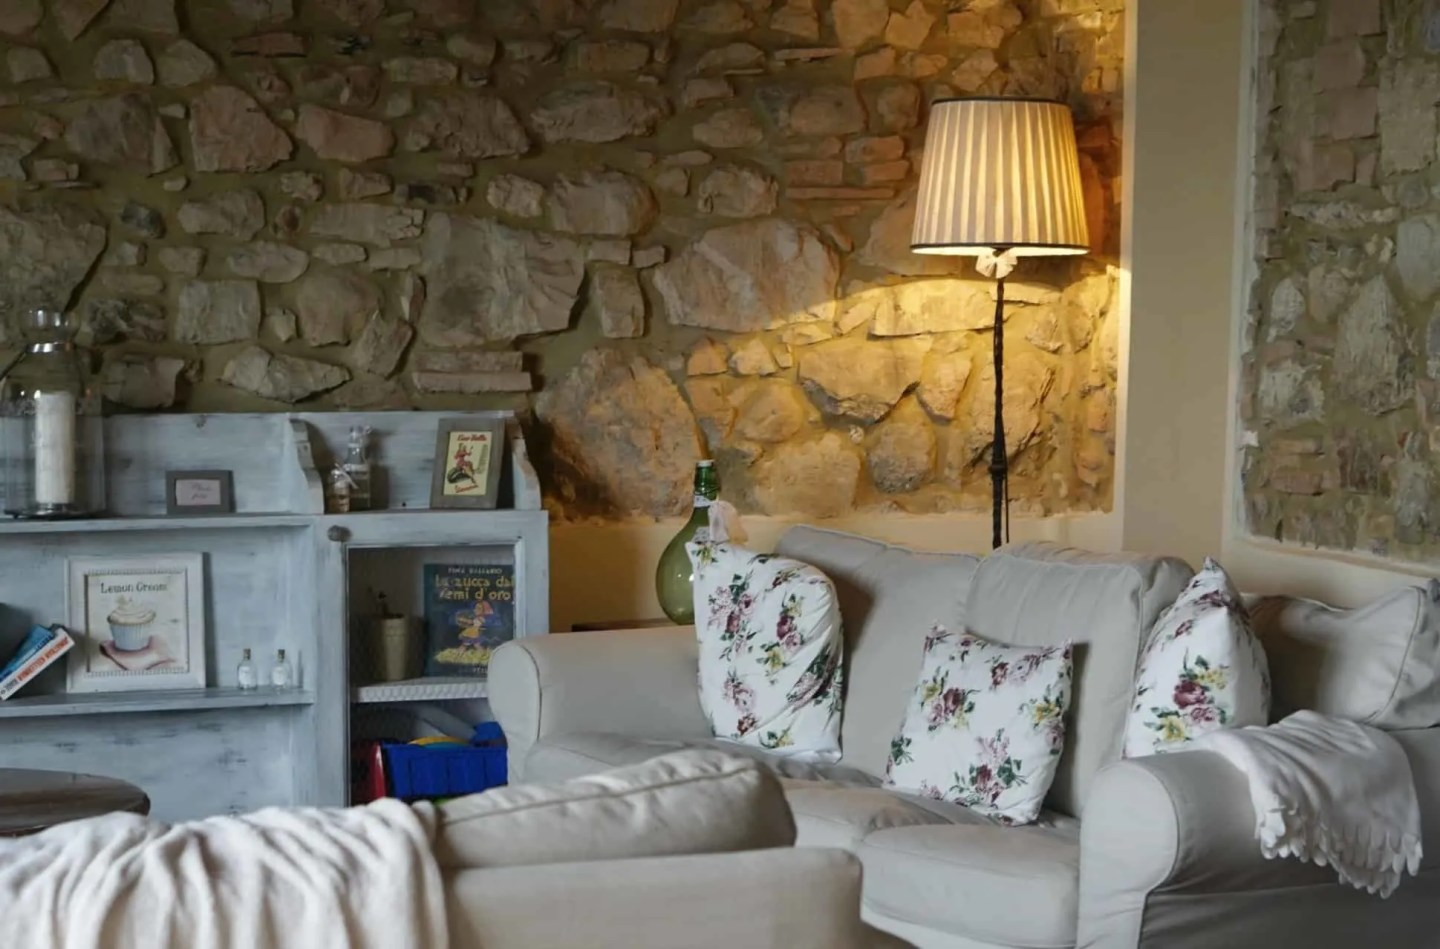 Cozy lounge at large Villa in Tuscany wwww.extraordinarychaos.com